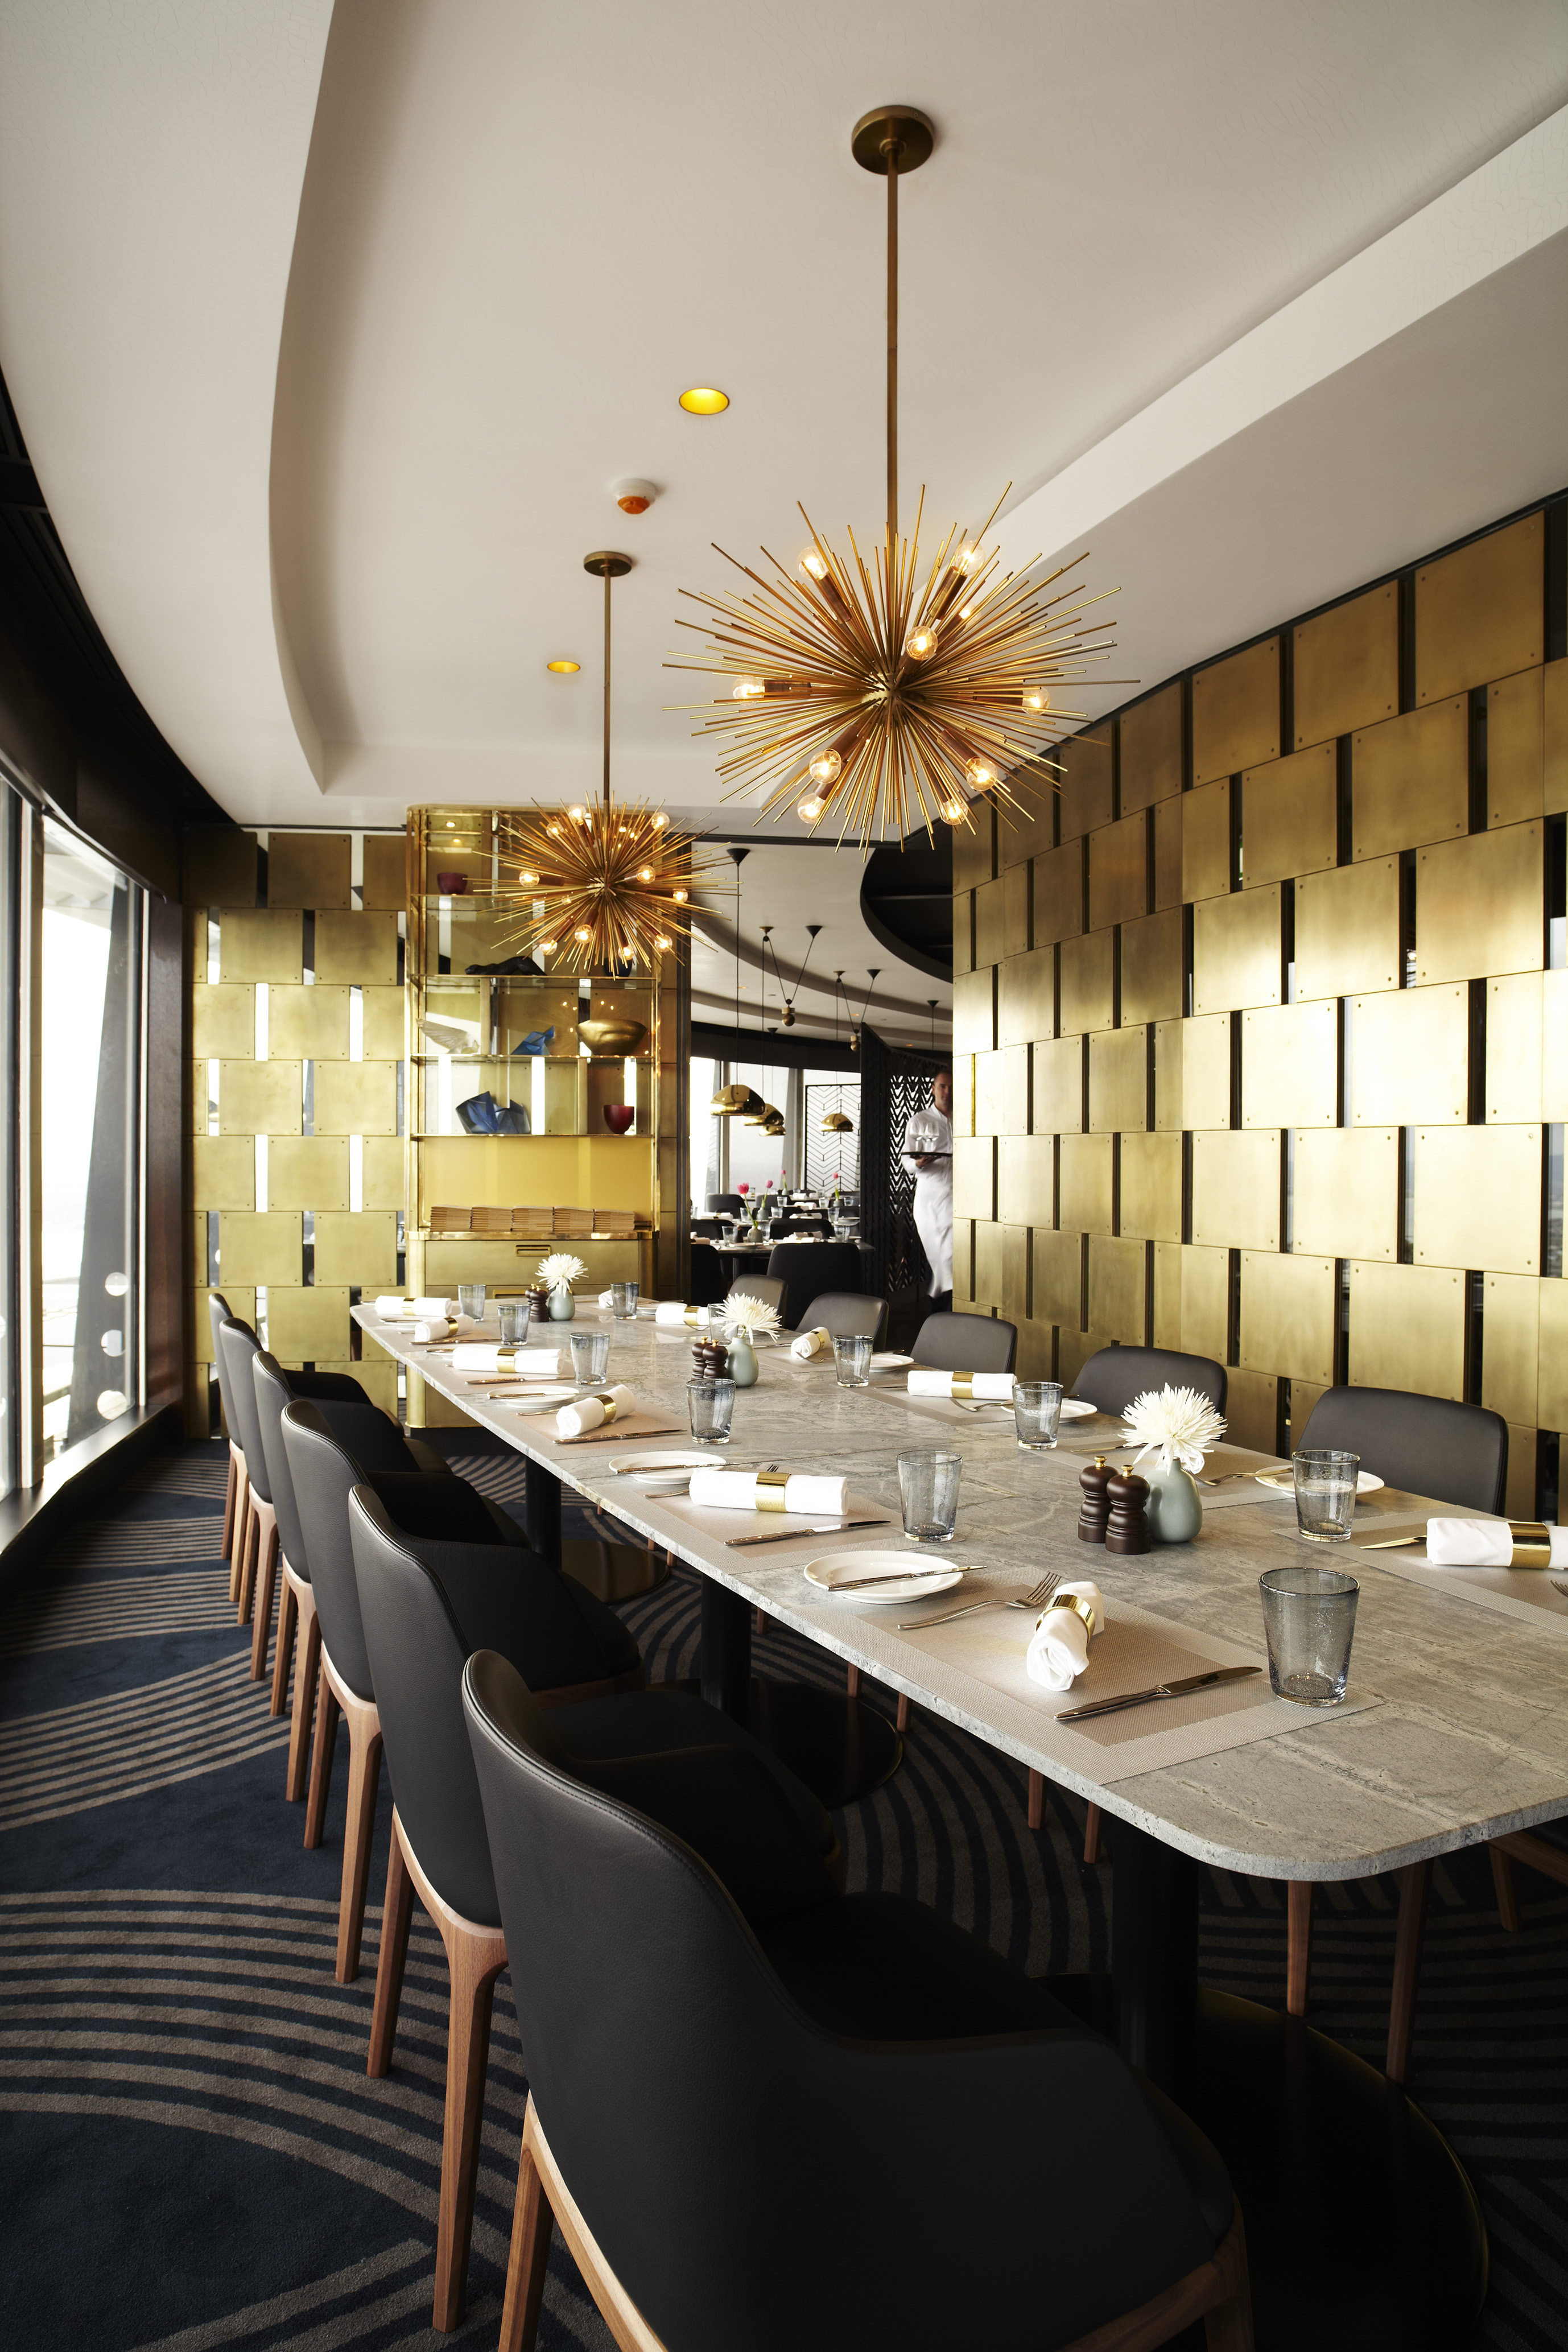 Private Dining Rooms Auckland Restaurants - [peenmedia.com]